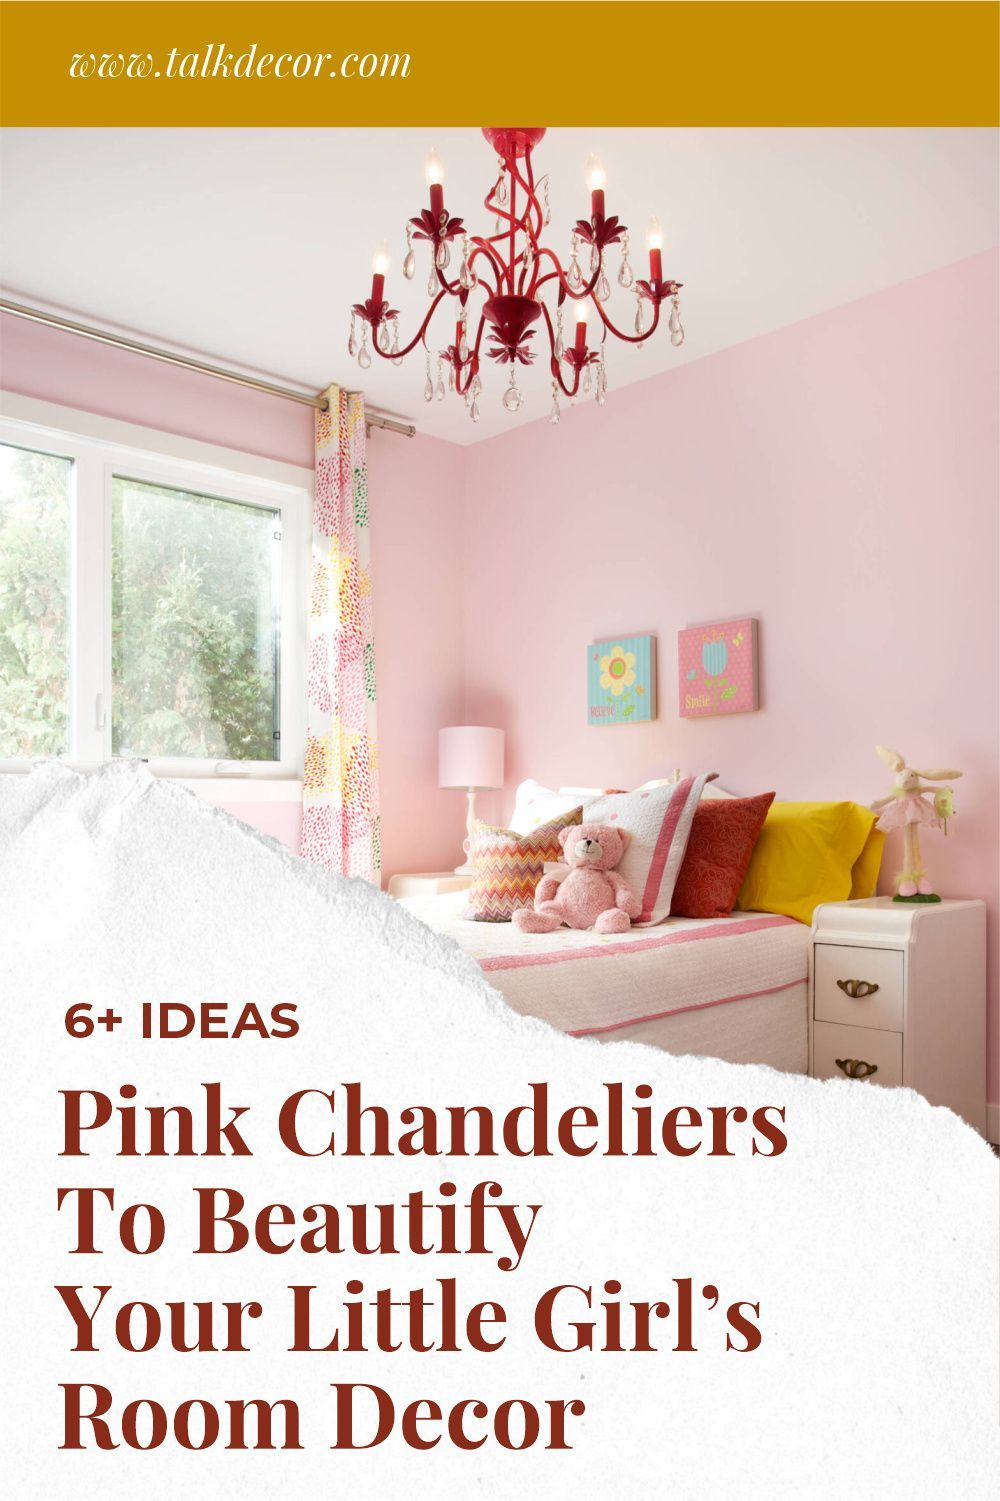 Use a pink chandelier to decorate a girl's room